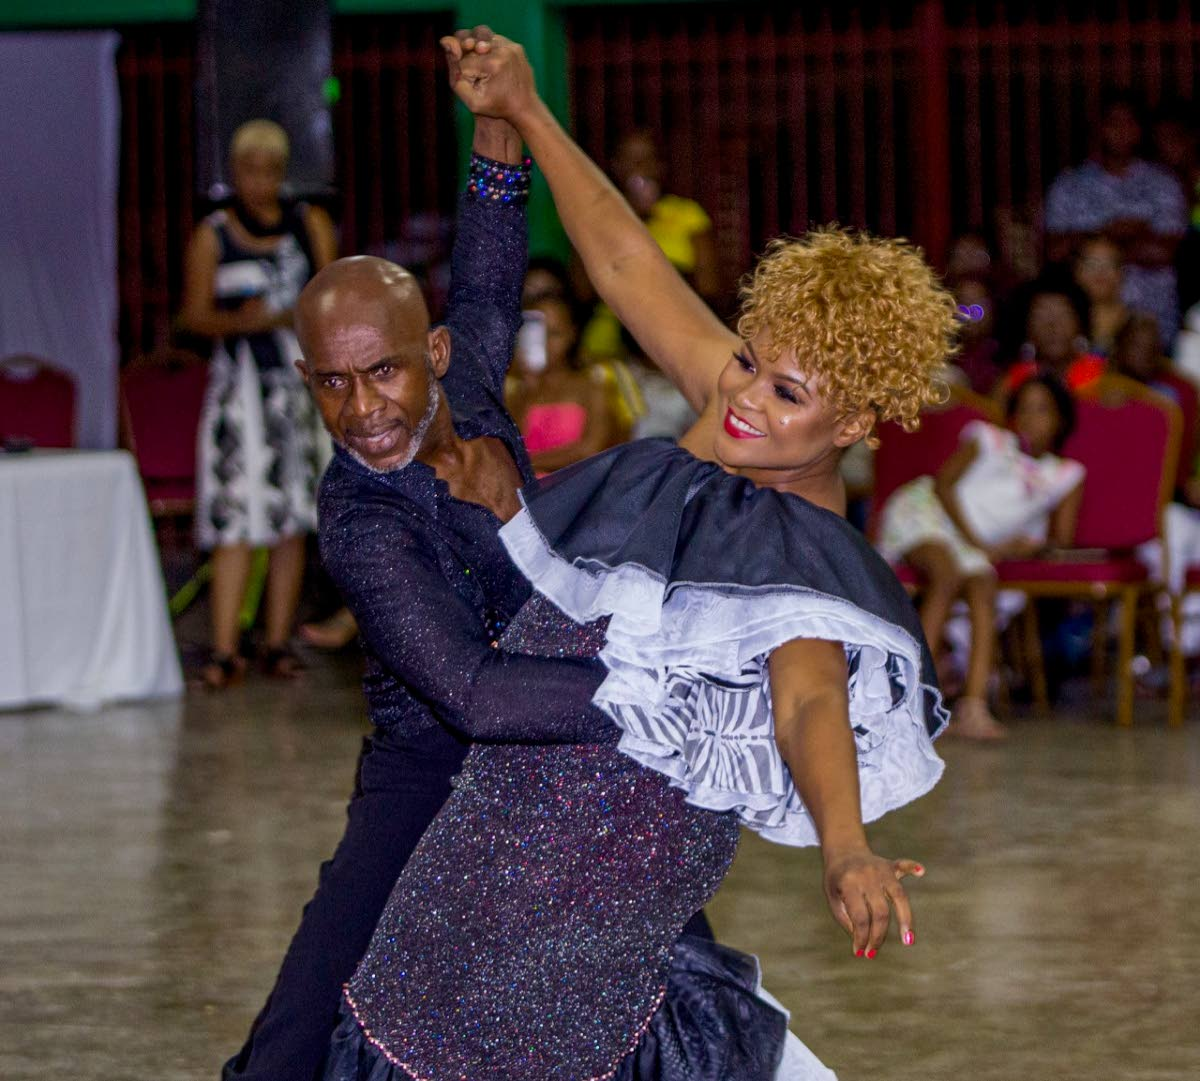 Culture Minister Dr Nyan Gadsby-Dolly, right, on her way to victory in the 2019 Dancing with Caribbean Stars competition, alongside her partner Francis Stanislaus, at the Signal Hill Secondary School on Saturday.  PHOTO BY DAVID REID